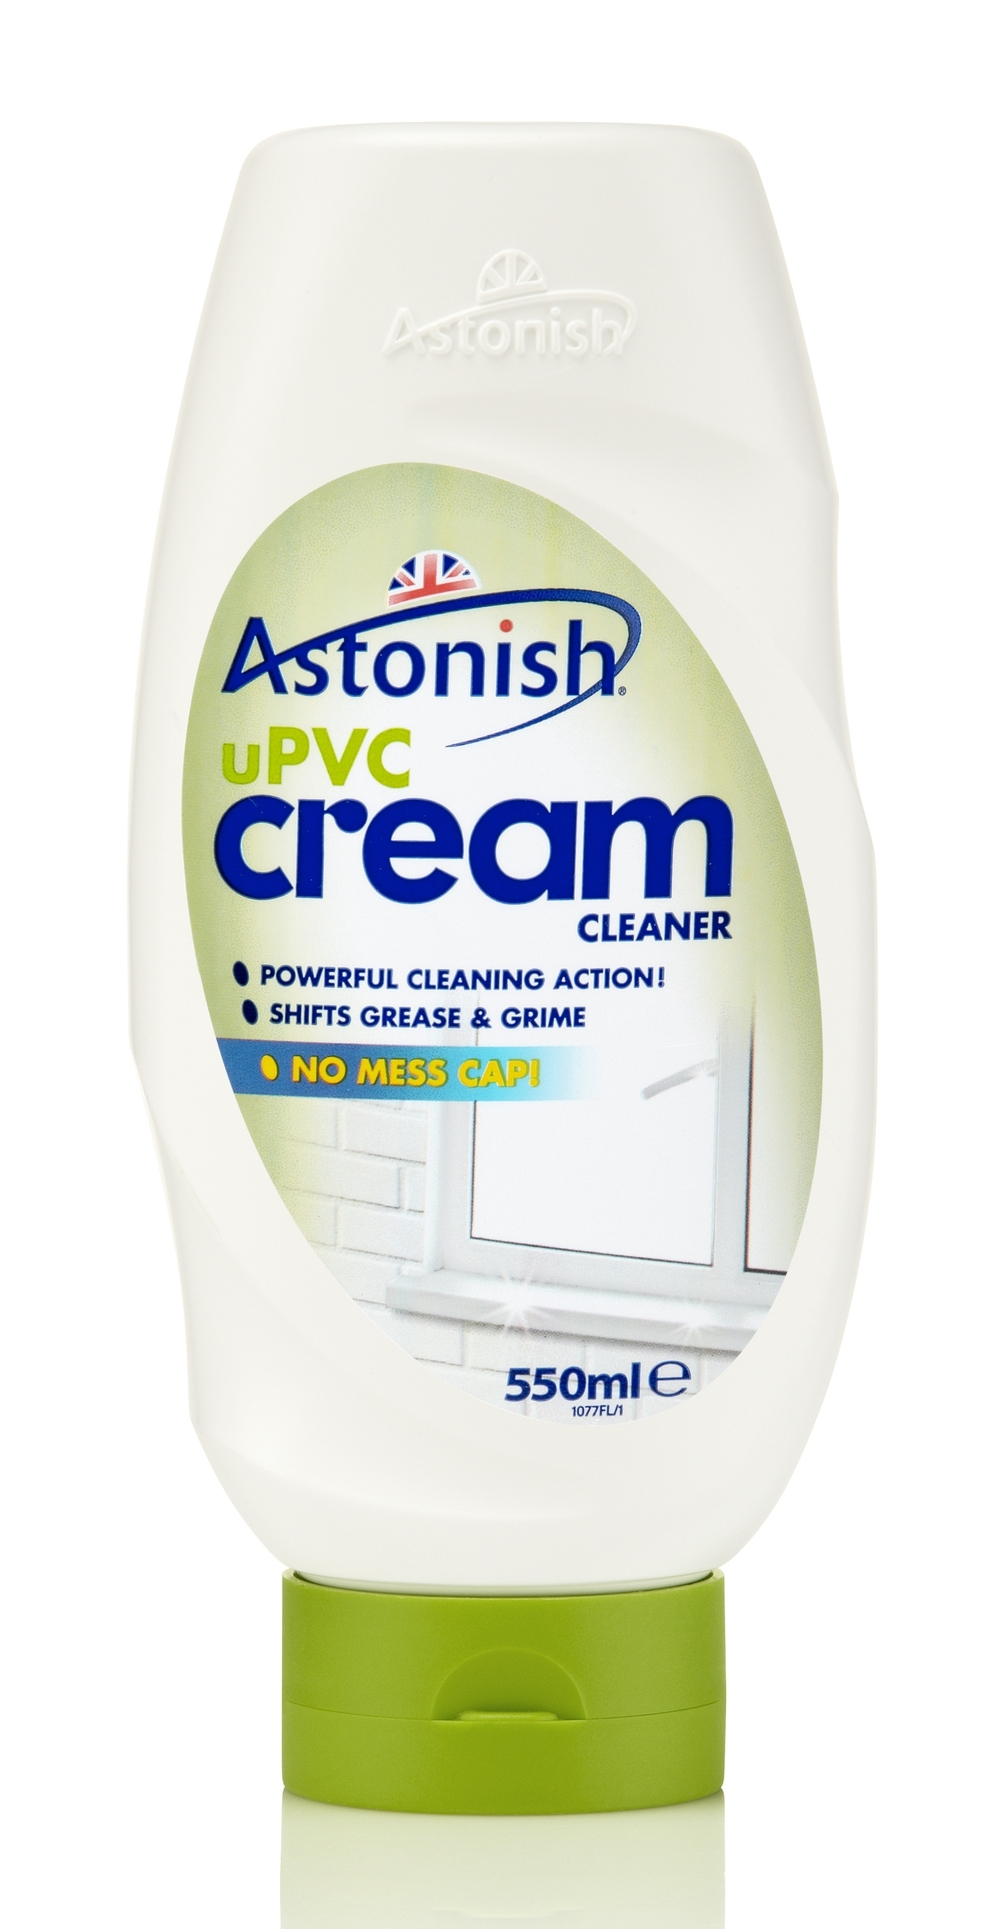 Astonish uPVC Cream Cleaner 550ml.JPG